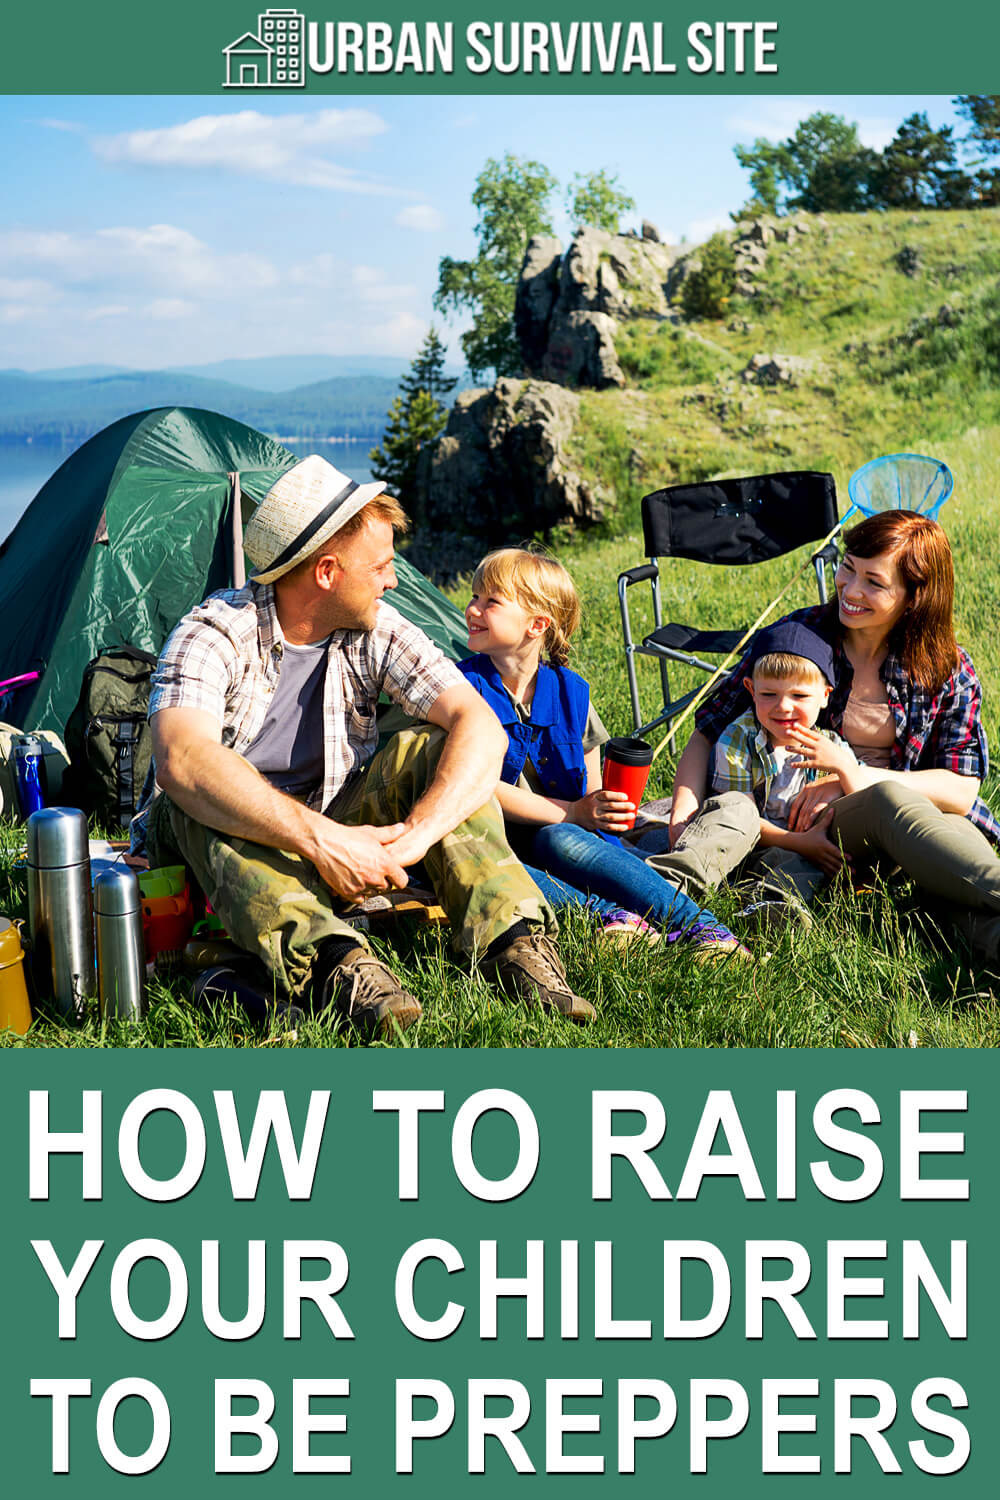 How to Raise Your Children to Be Preppers